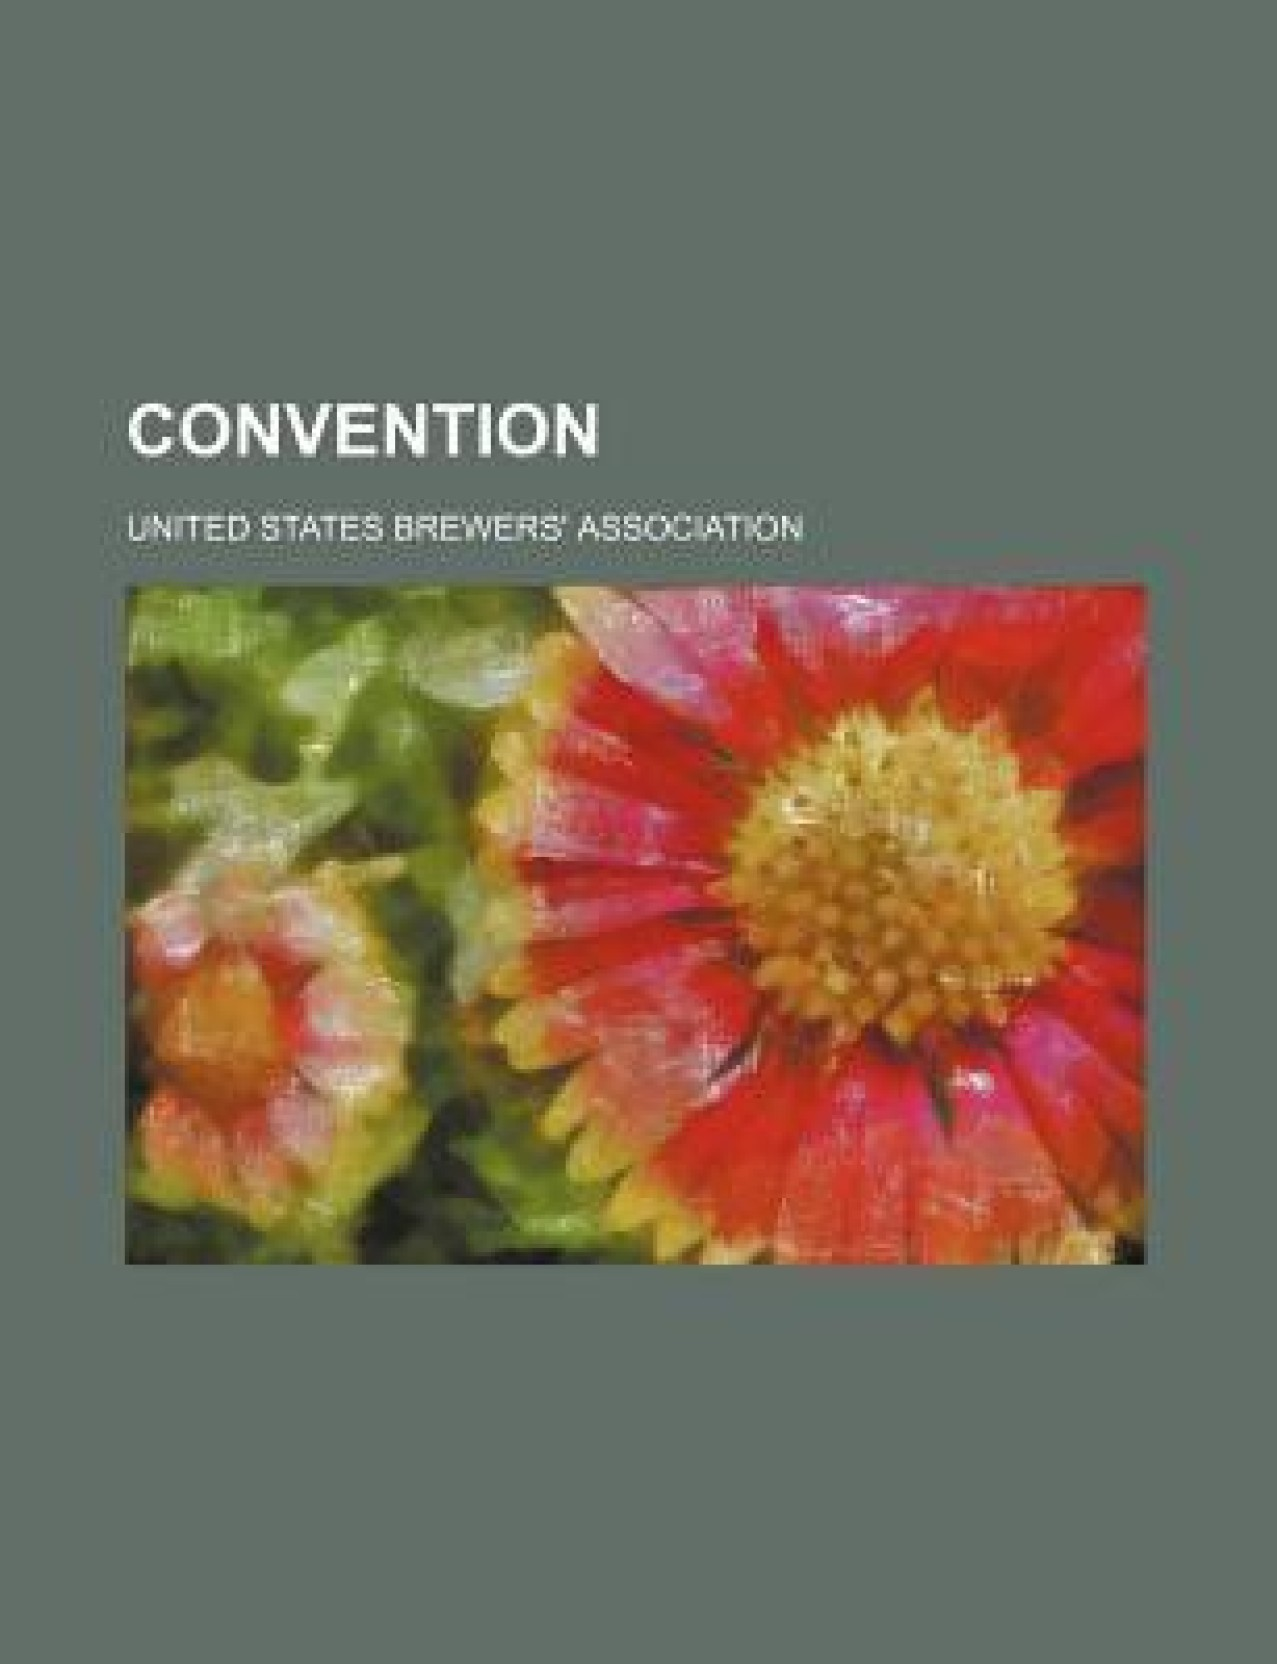 CONVENTION: Buy CONVENTION by UNITED ASSOCIATION at Low Price in